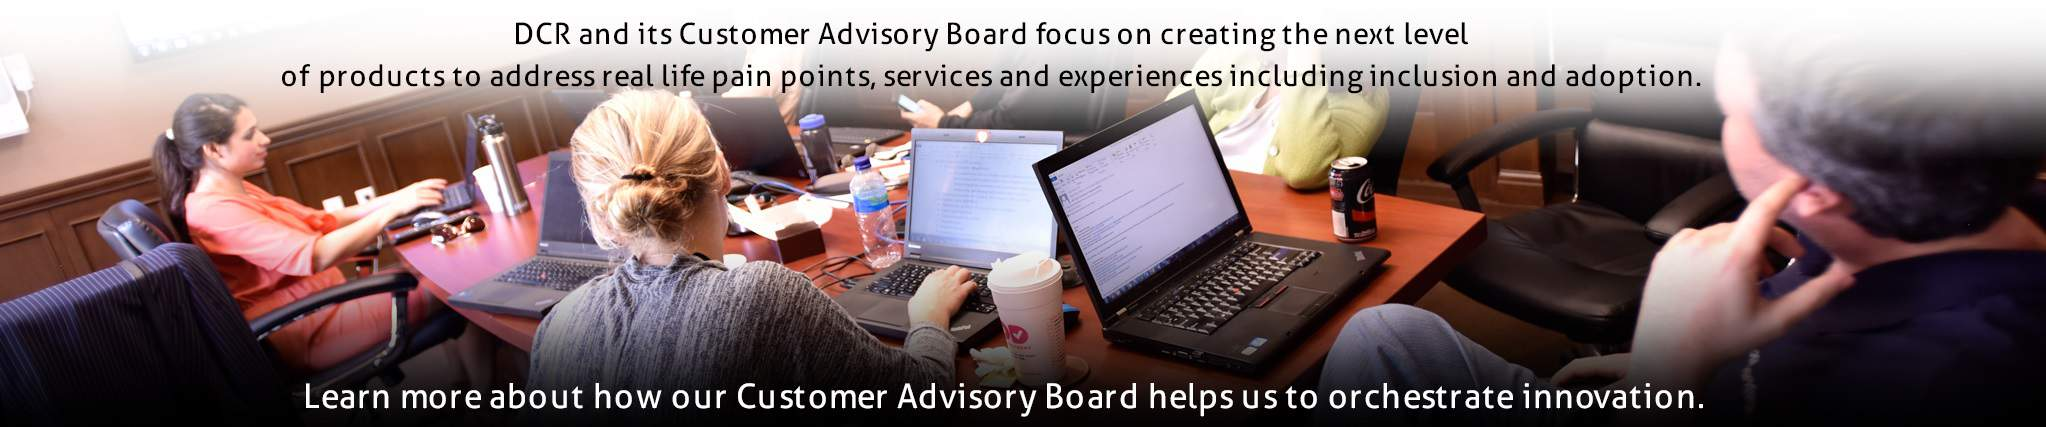 DCR Customer Advisory Board